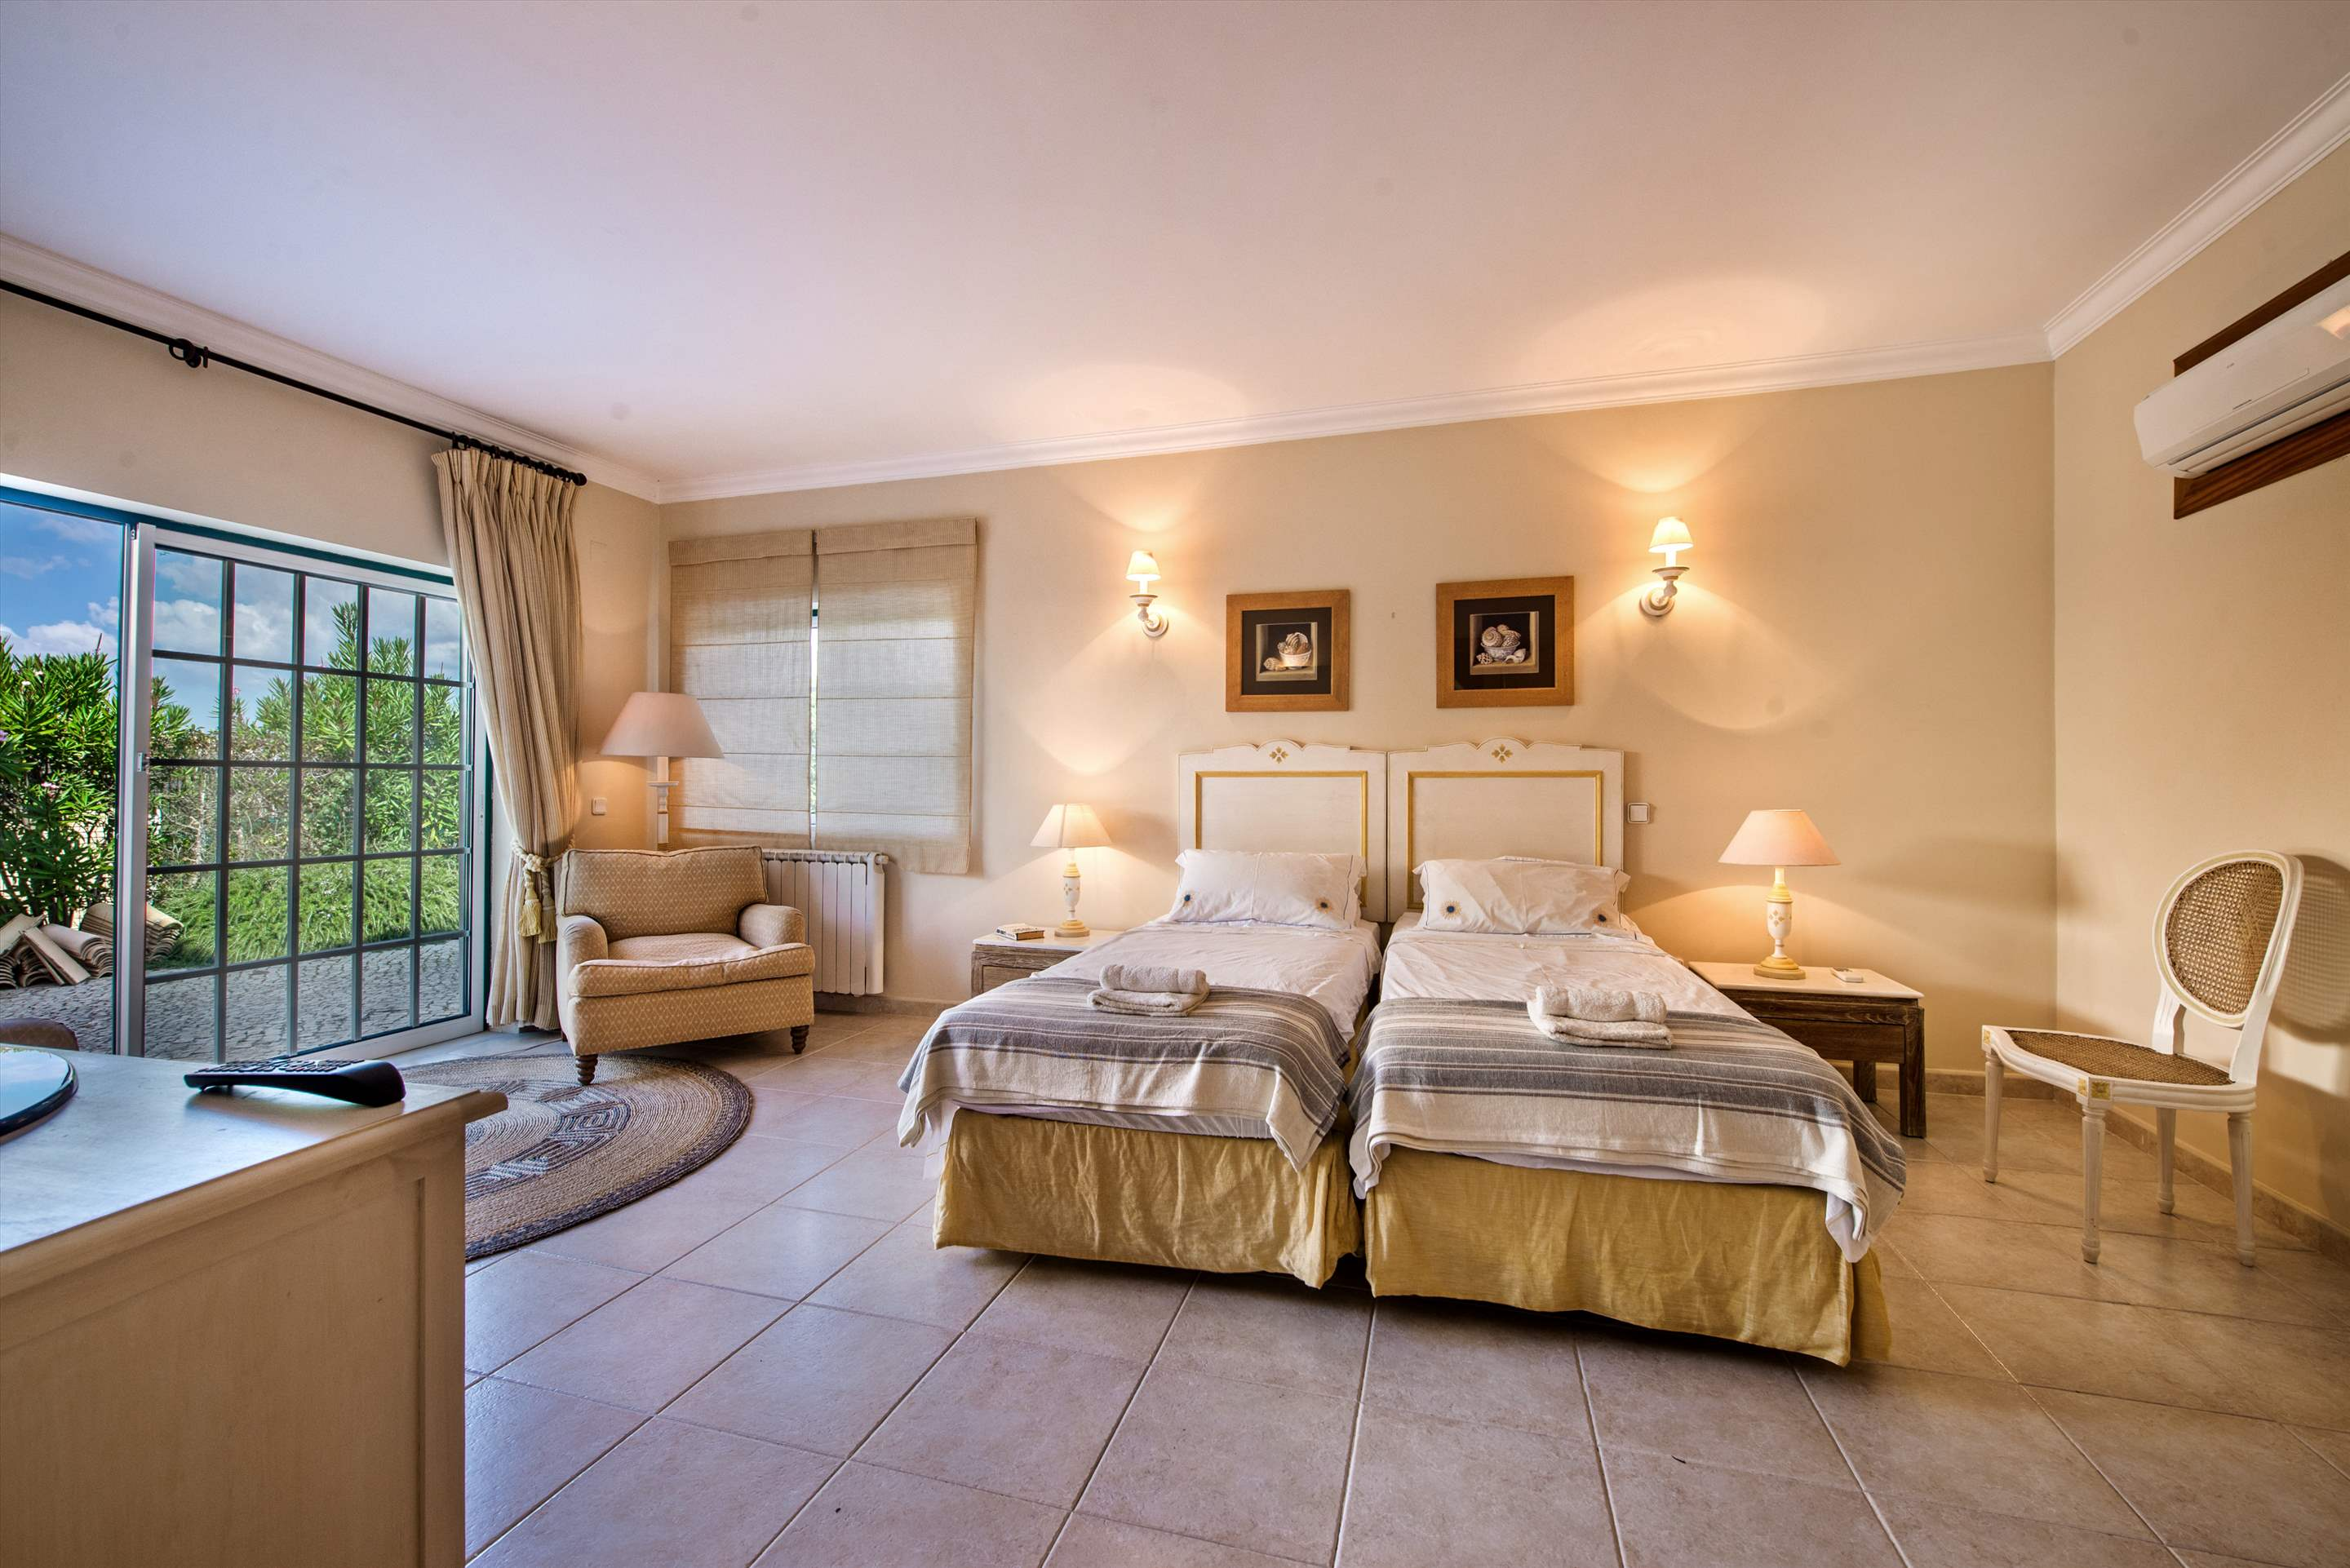 Casa da Encosta, 4 bedroom villa in Vale do Lobo, Algarve Photo #18